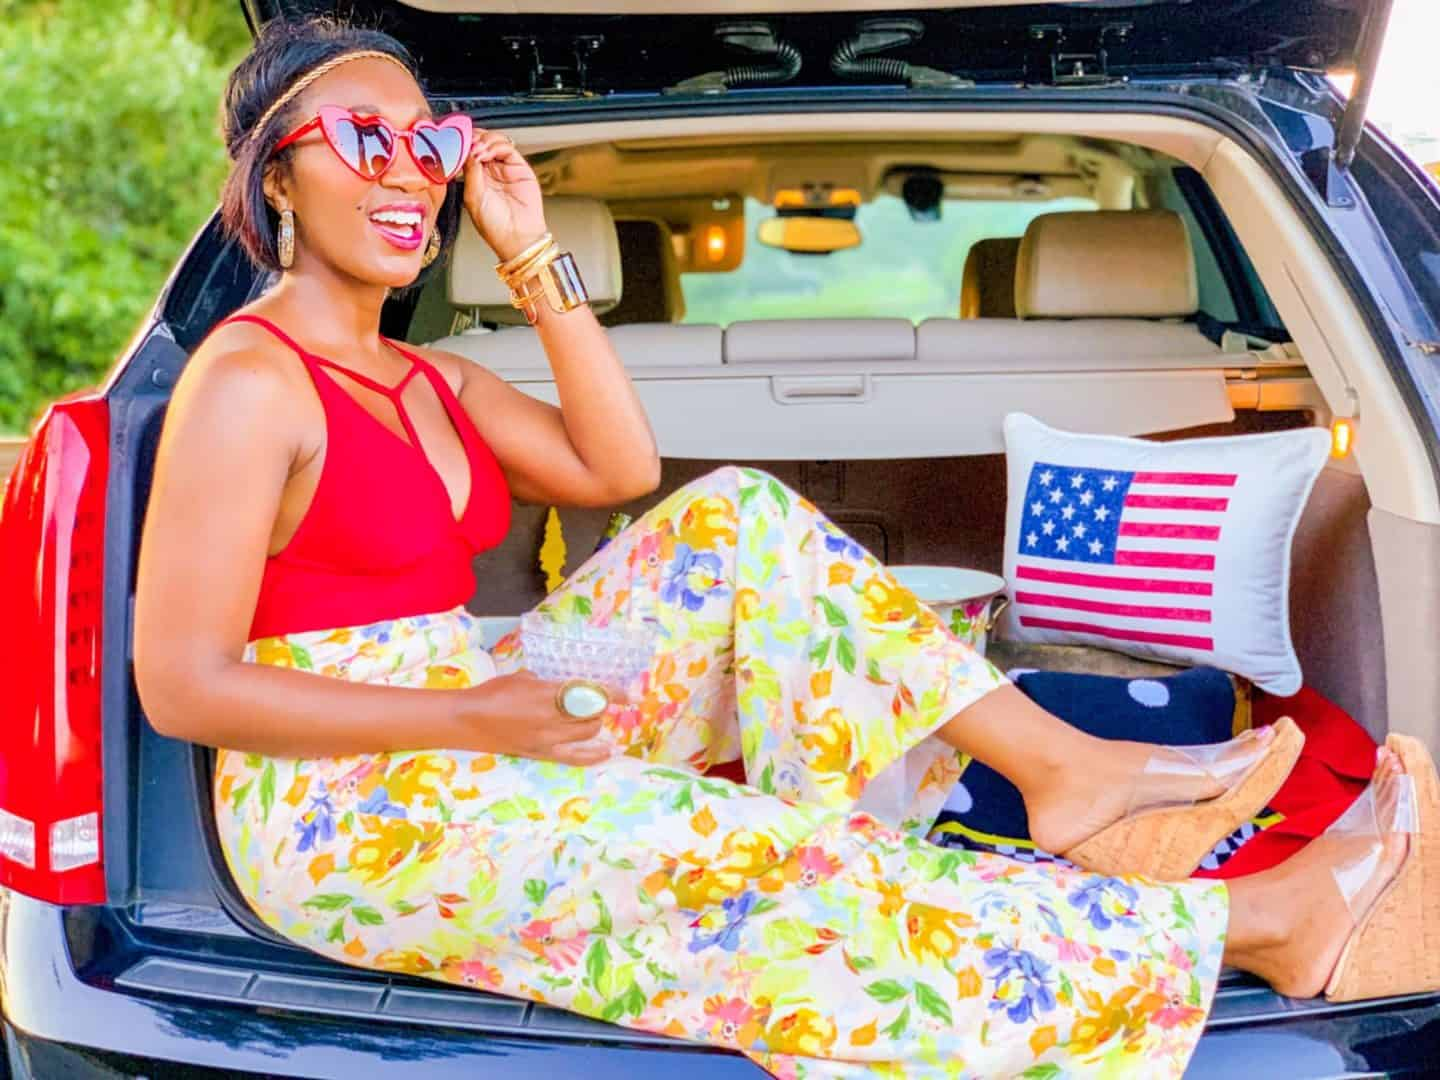 Shaunda Necole Work Hard & Play Harder- Labor Day Weekend in my Cadillac by the shore